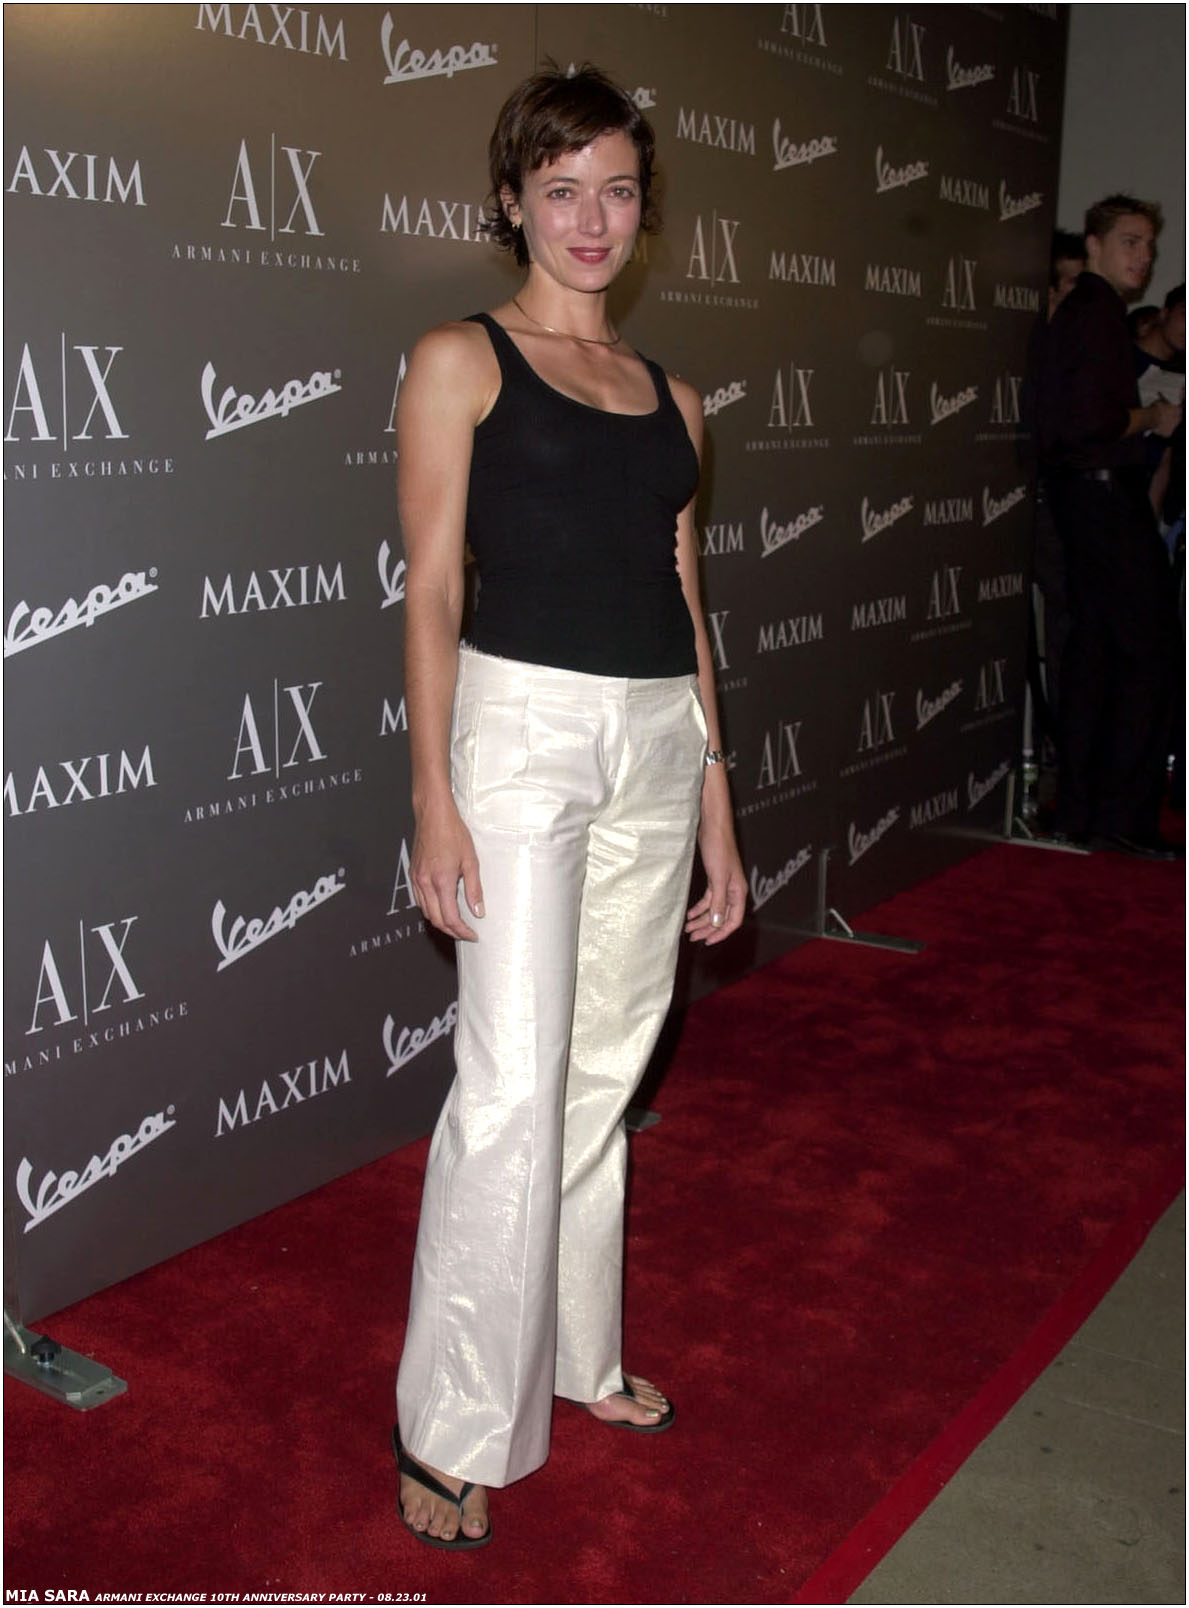 37 Hot Pictures Of Mia Sara Which Will Make You Fall For Her